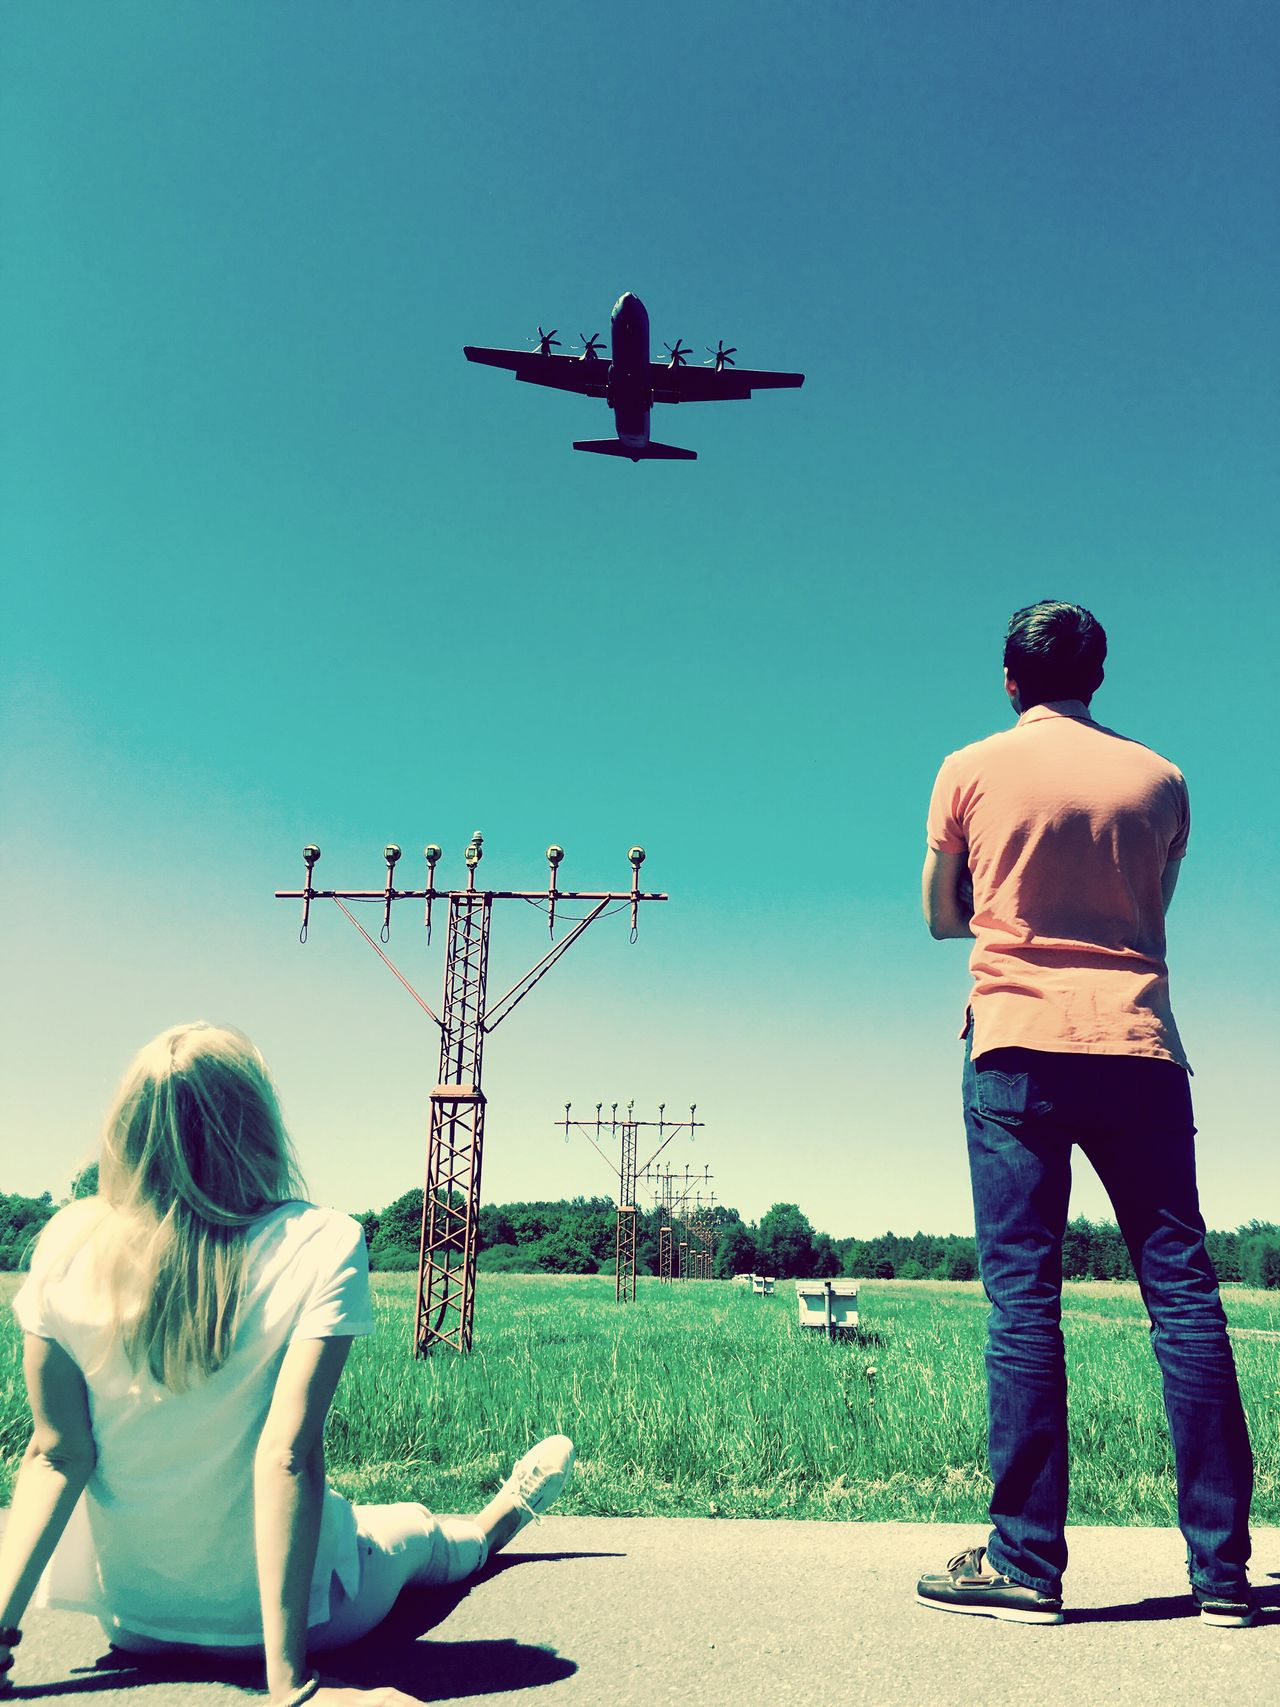 Real People Rear View Day Clear Sky Casual Clothing Leisure Activity Watching Outdoors Technology Sky Lifestyles Standing Men Togetherness Full Length Flying Childhood Airplane Nature People Airport Aircraft C113 AirPlane ✈